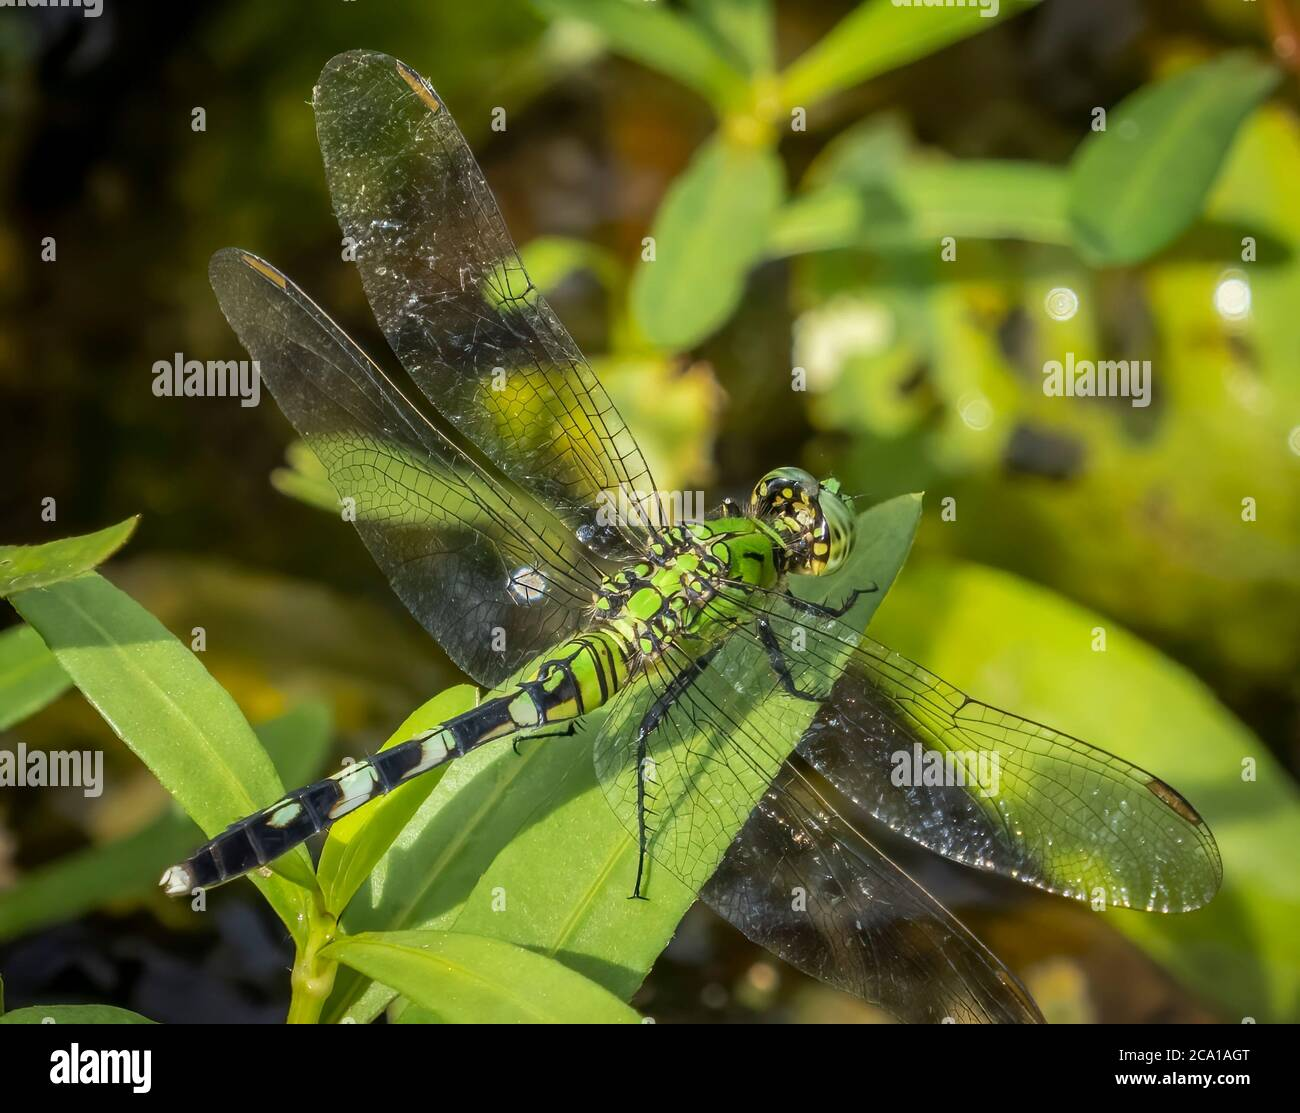 Close up of female Eastern or Common Pondhawk Dragonfly taken at Deer Prairie Creek Preserve in North Port Florida United States Stock Photo